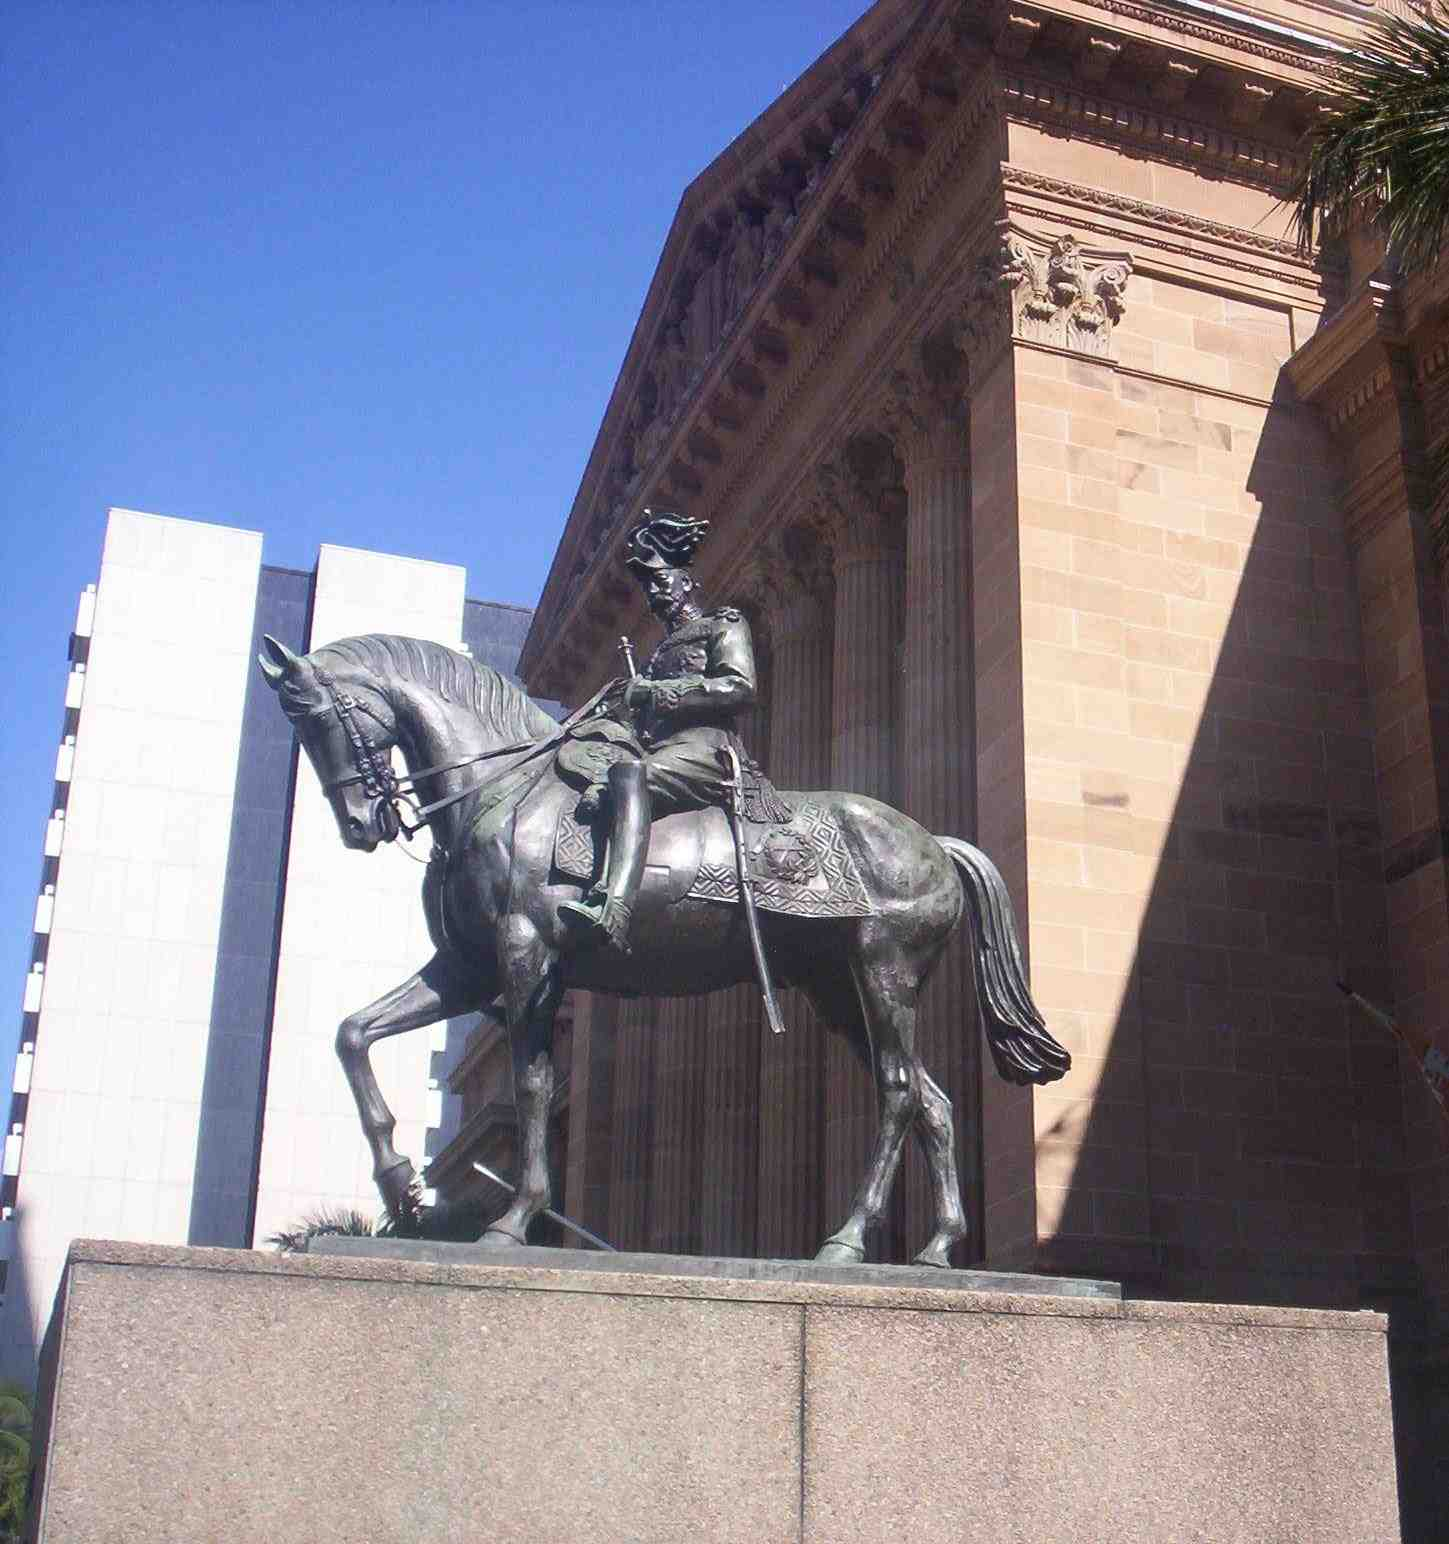 Statue of King George V in King George Square outside Brisbane City Hall. Photo taken on August 9, 2007.